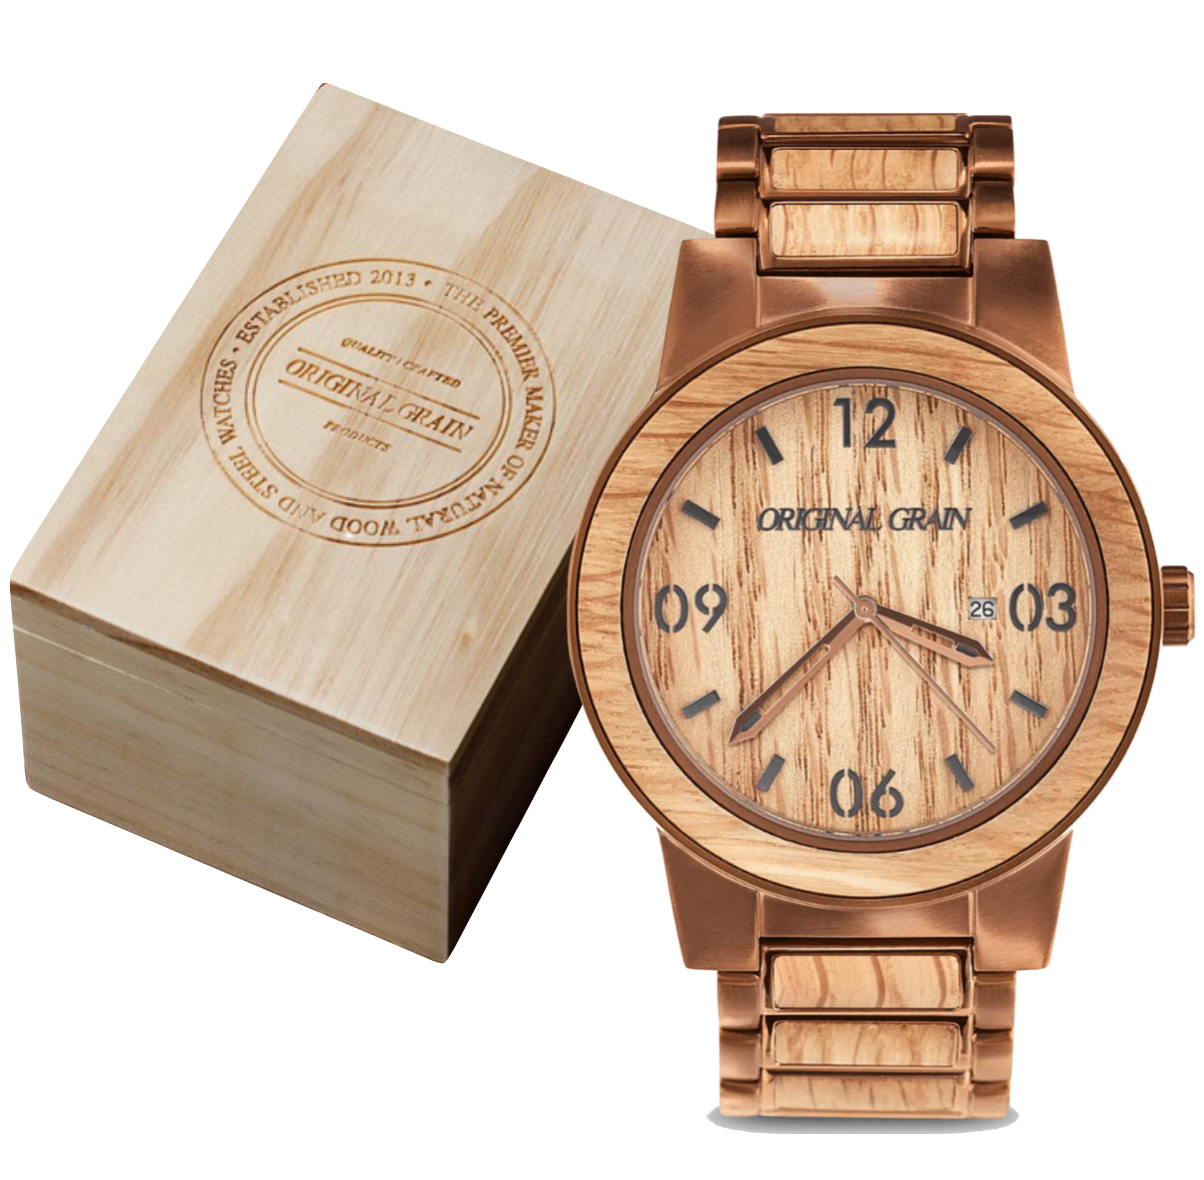 47mm Watch from Original Grain $279   , crafted from Reclaimed American Oak Bourbon Barrels and Brushed Espresso Stainless Steel, Mineral Crystal, Water Resistant Casing, Japanese Miyota Citizen Quartz movement, all nestled in a wooden box